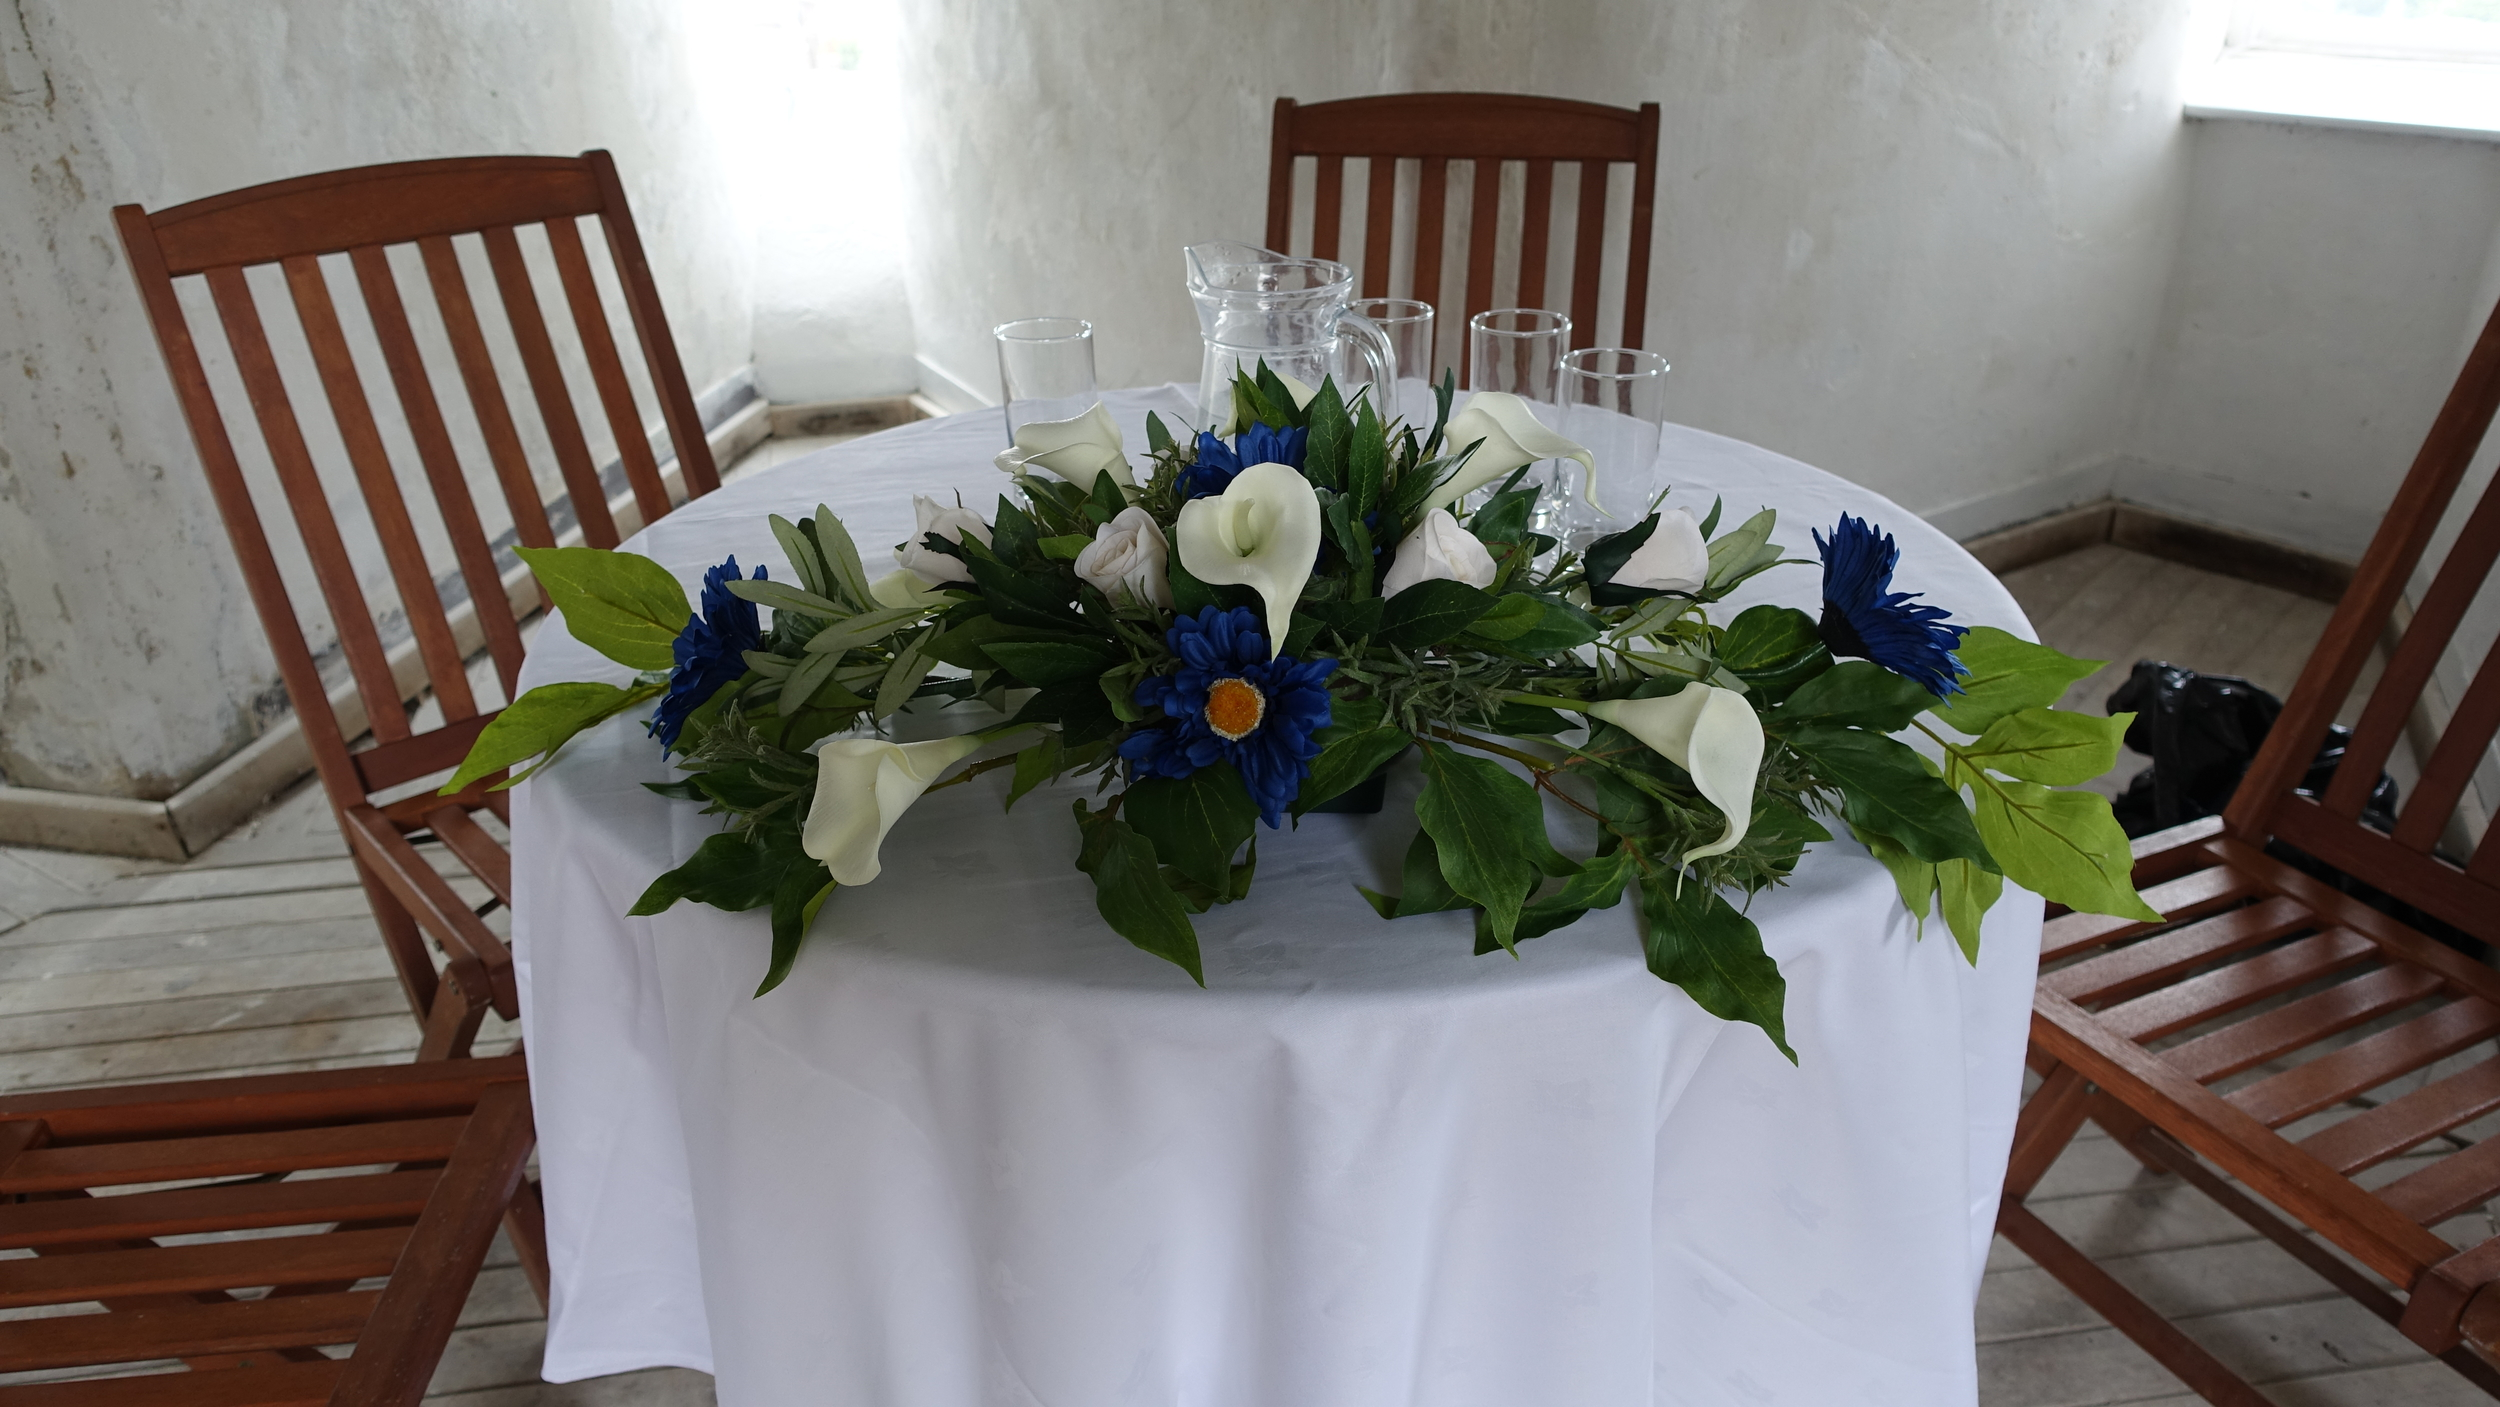 Ceremony Table Display - Dark Blue Gerberas, Ivory Calla Lilies, With Peony & Herb Leaves